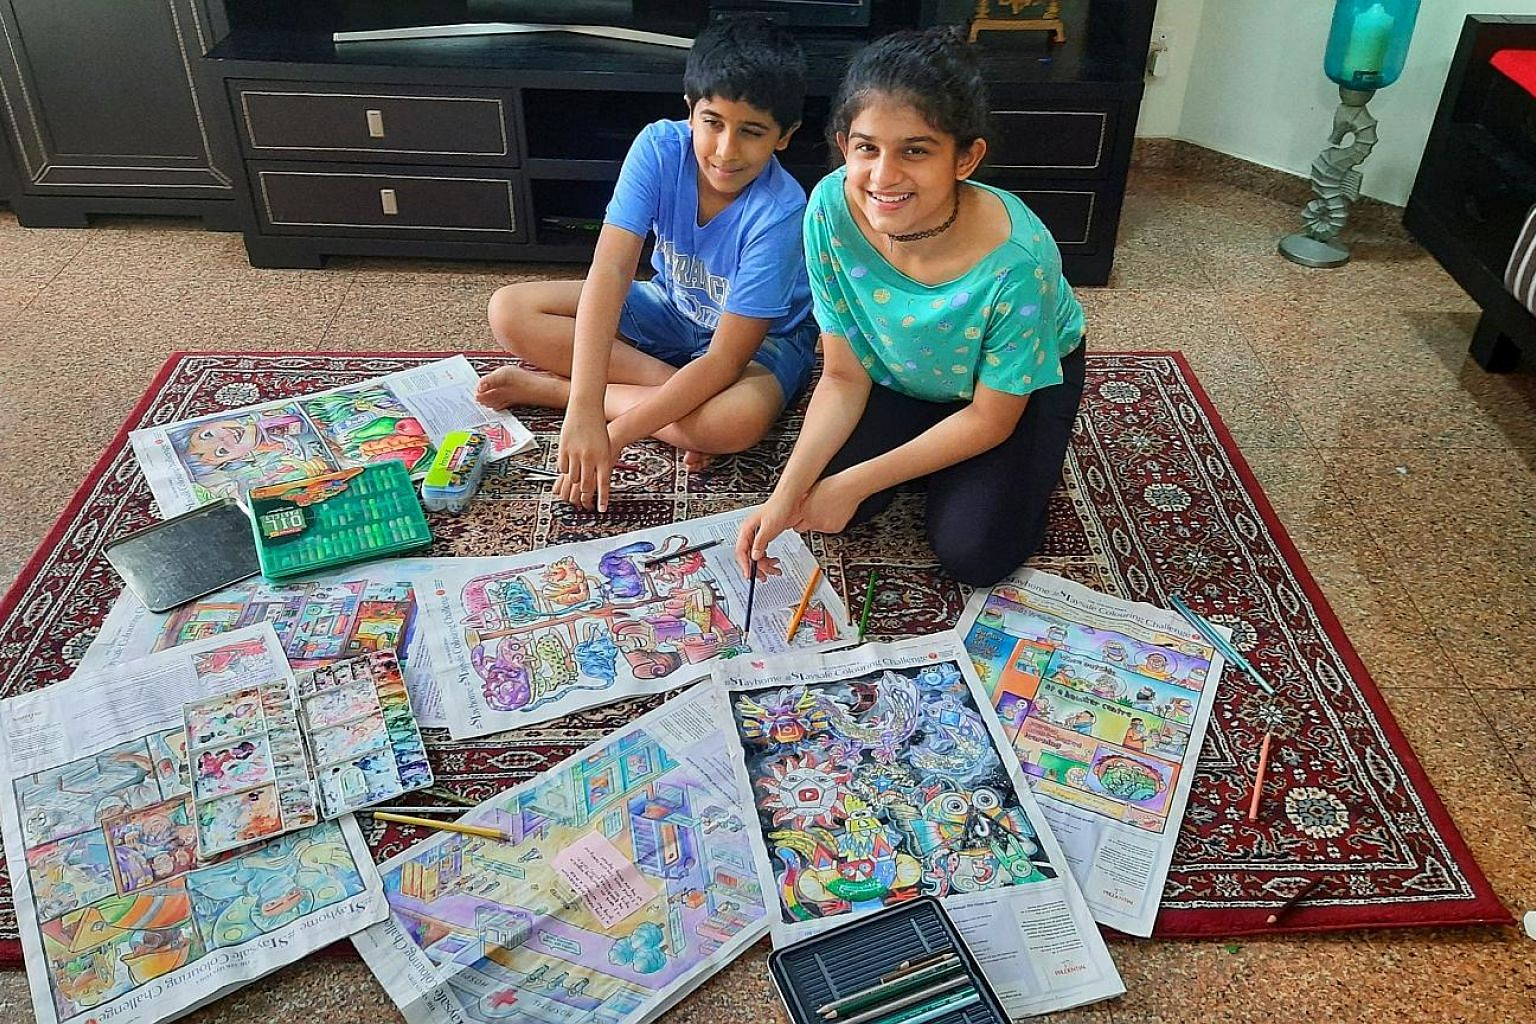 Sanchita Dhareshwar used a variety of mediums to colour the visuals, with her brother Shantanu putting the finishing touches on them.